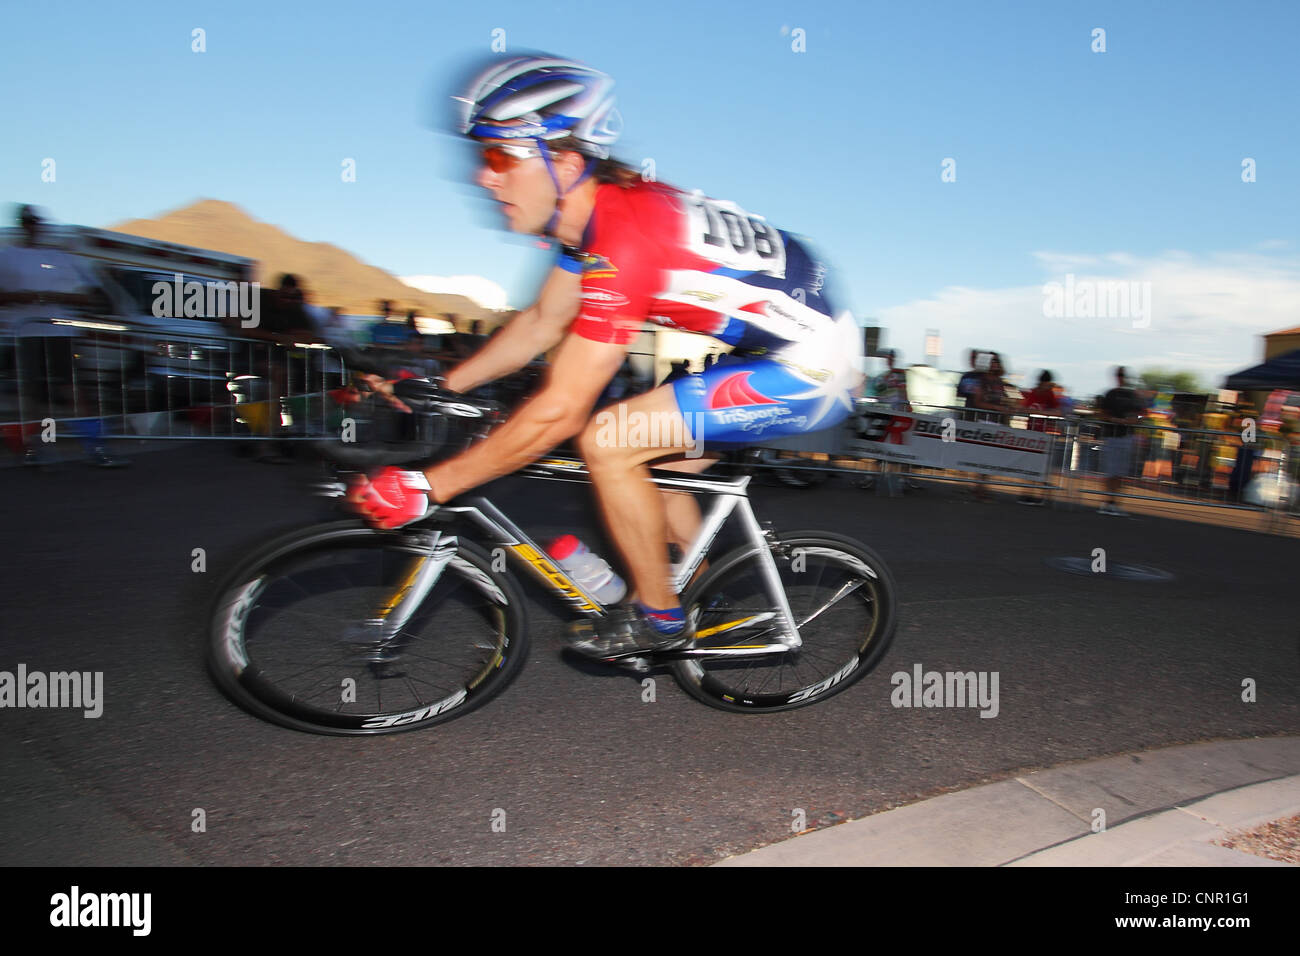 SCOTTSDALE, AZ - OCTOBER 2: Cyclists compete in the Scottsdale Cycling Festival Criterium. Stock Photo